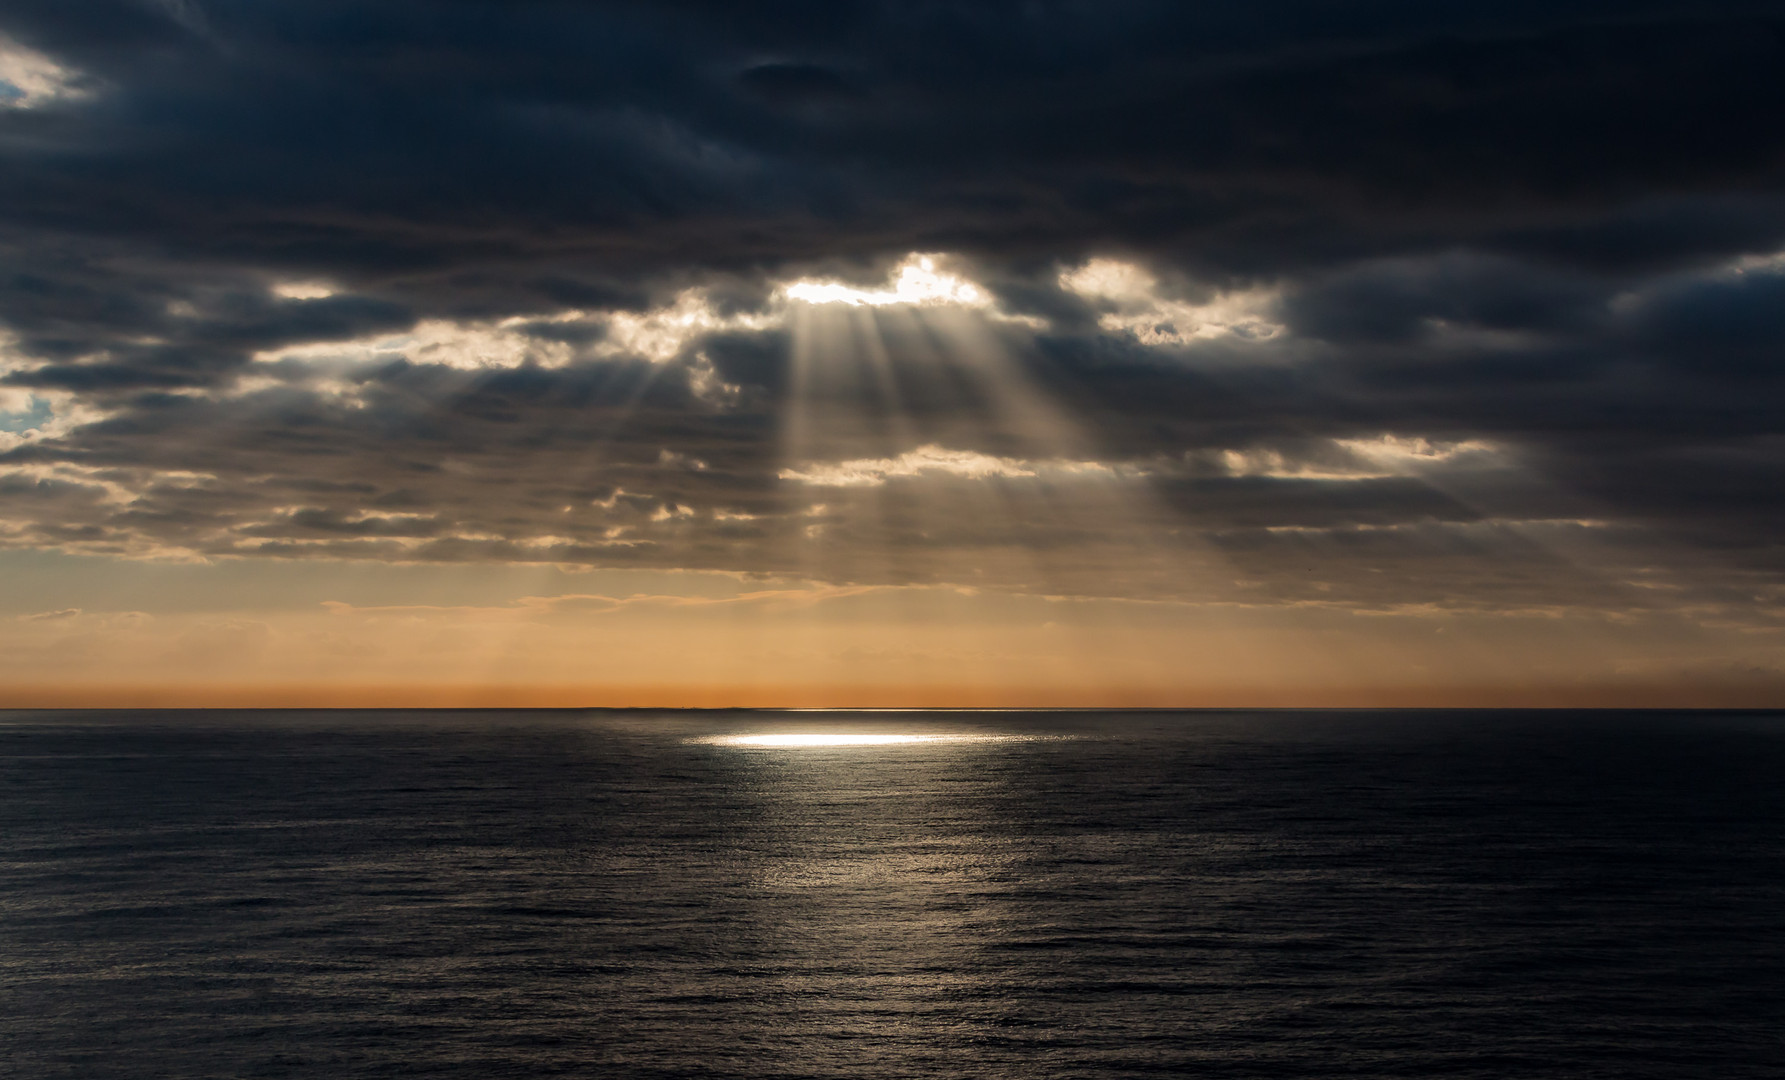 Light from Heaven on the Waters